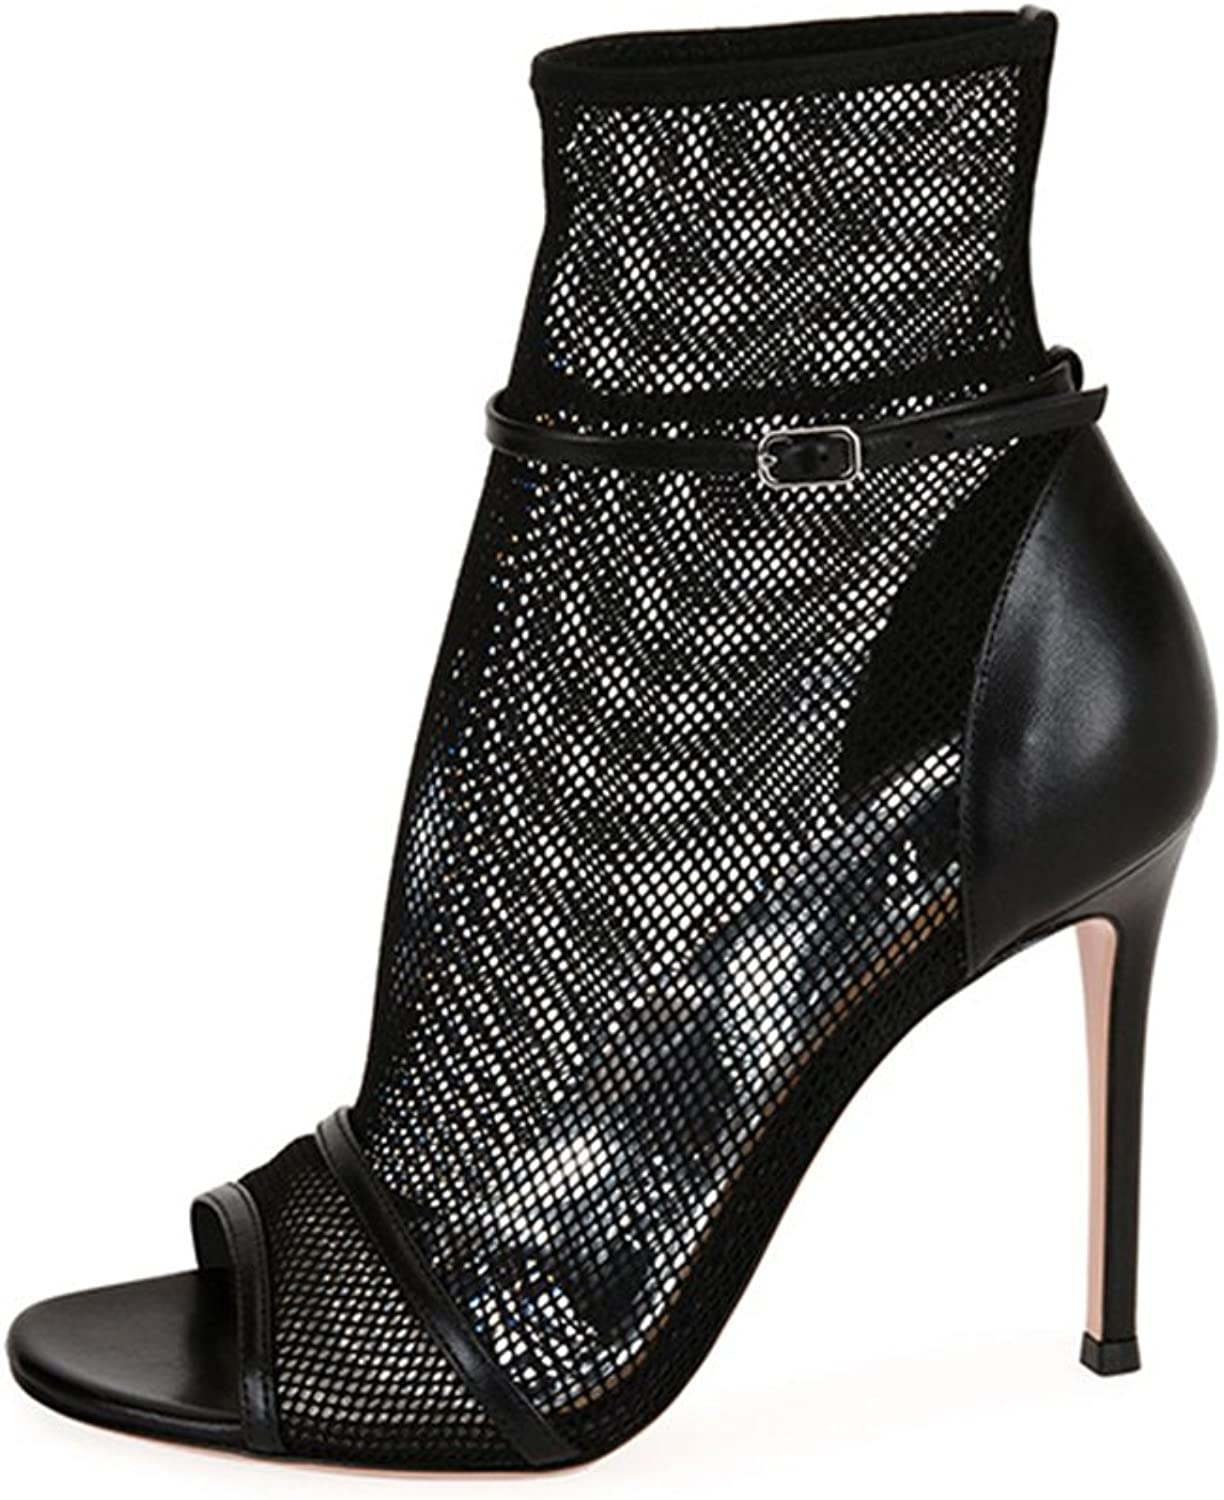 Women's Nude Black Super High Heel Sandals Sexy Mesh Ankle Boots Openwork shoes Ankle Strap(Heel Height  11-13cm)